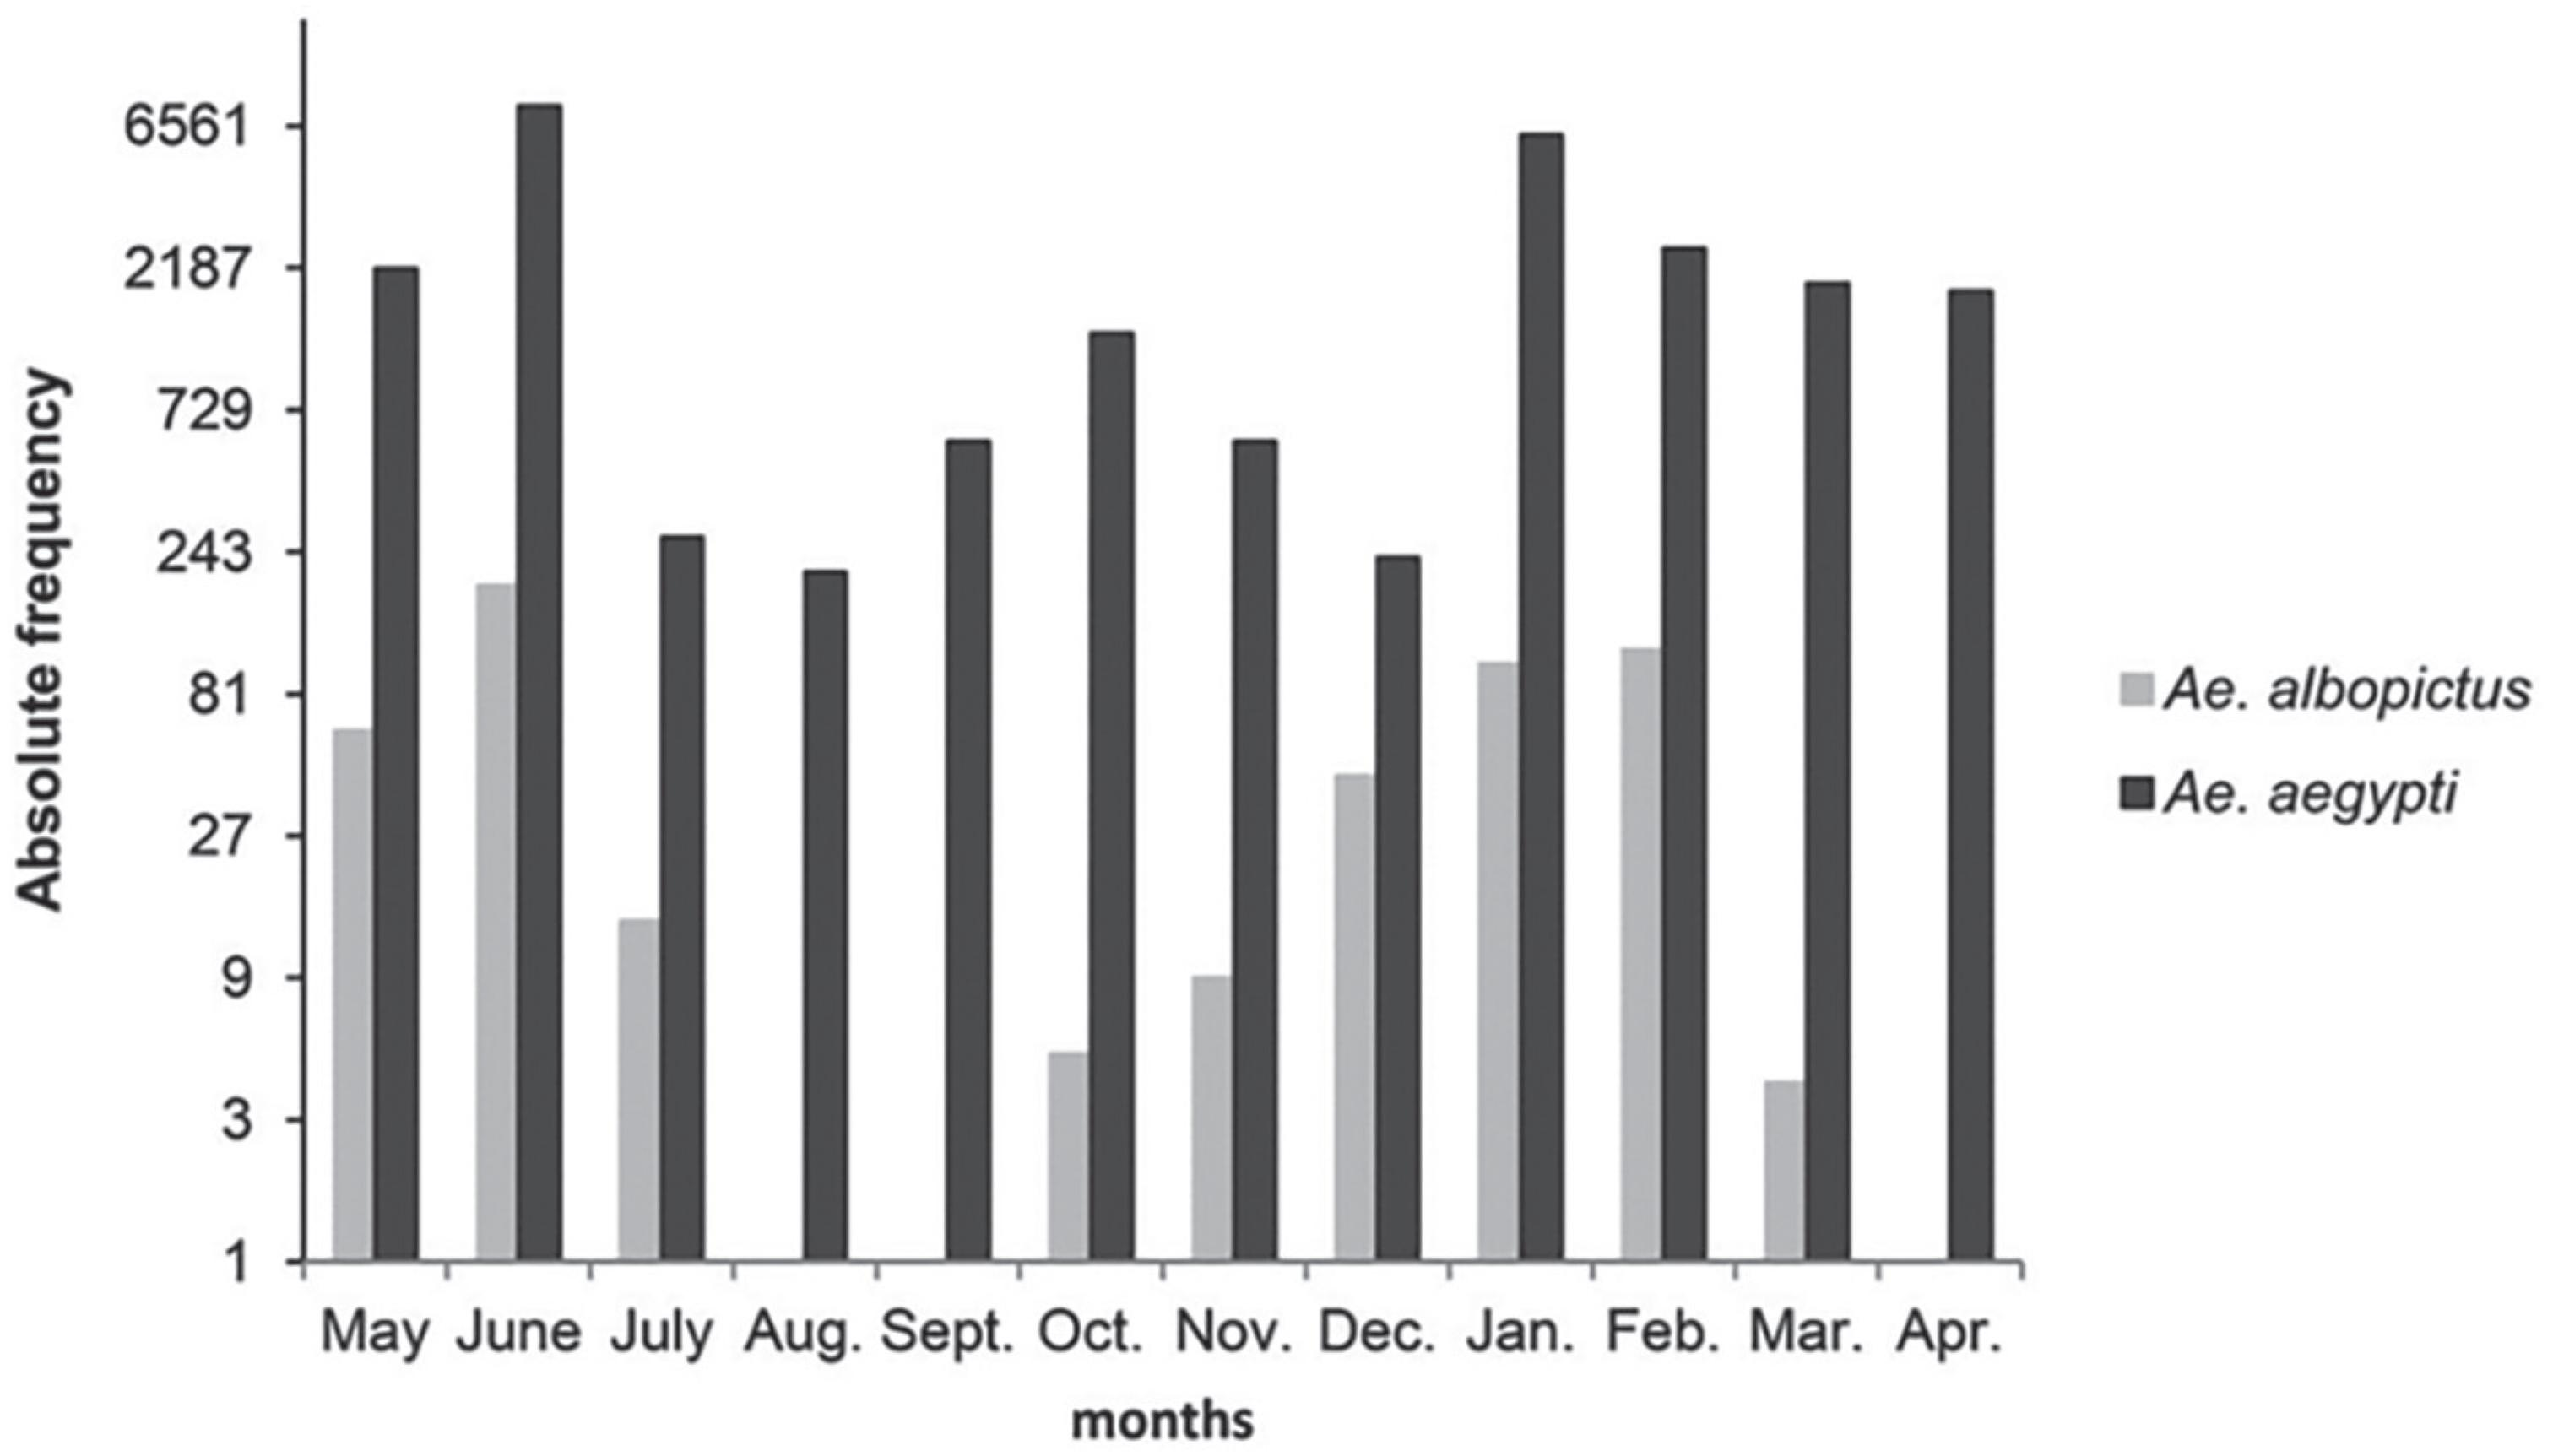 Monthly distribution of Aedes aegypti and Aedes albopictus in Campo Grande, MS, May/2012 to April/2013.